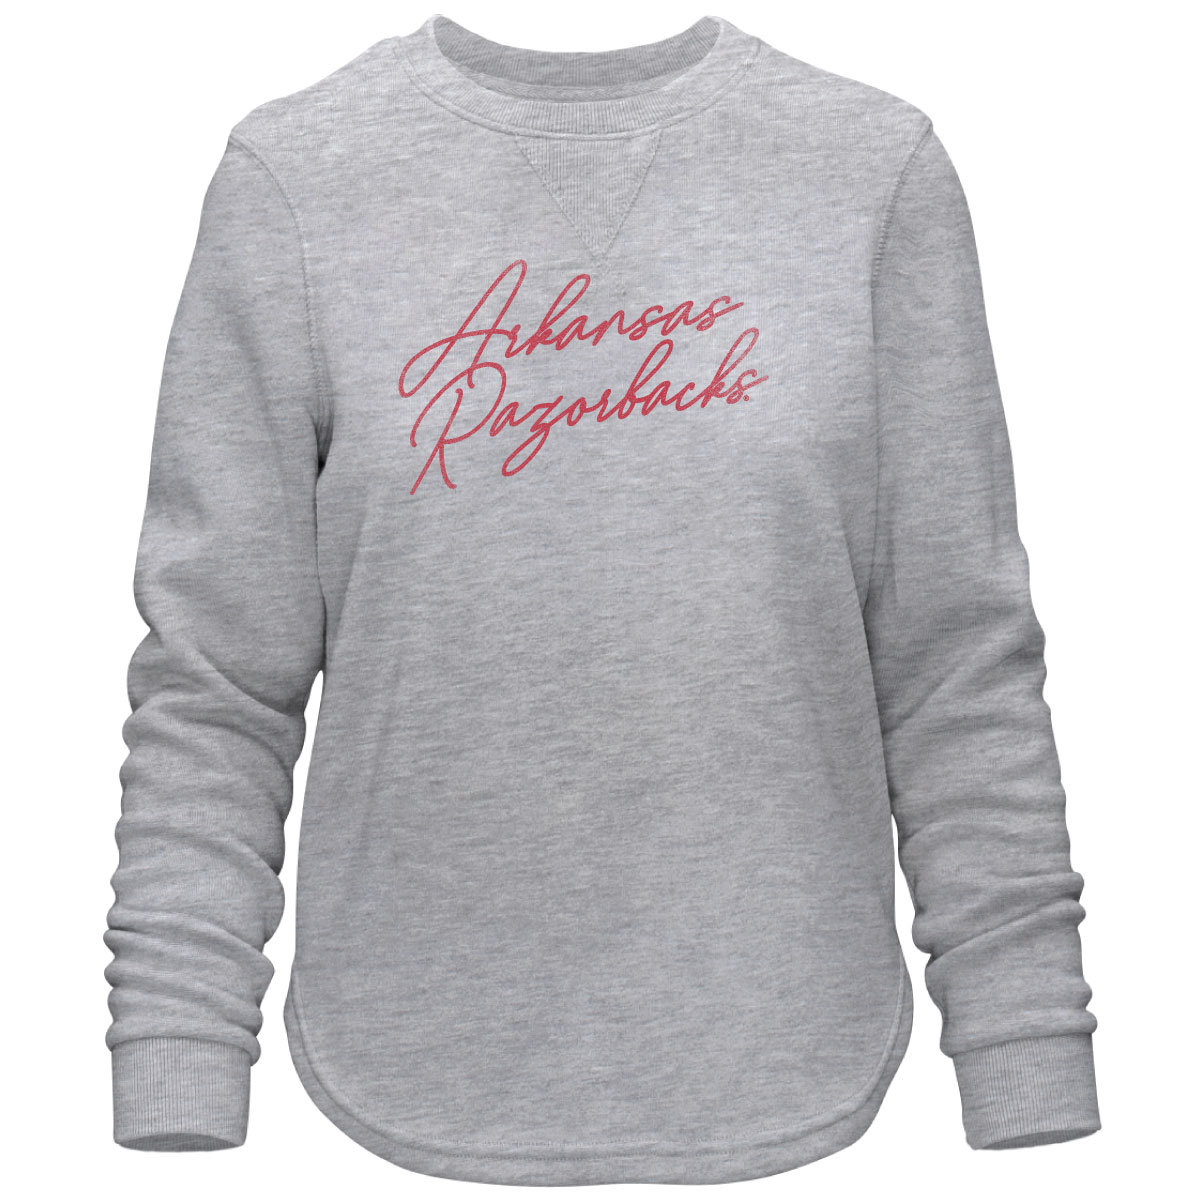 Arkansas Razorbacks Script Sweatshirt